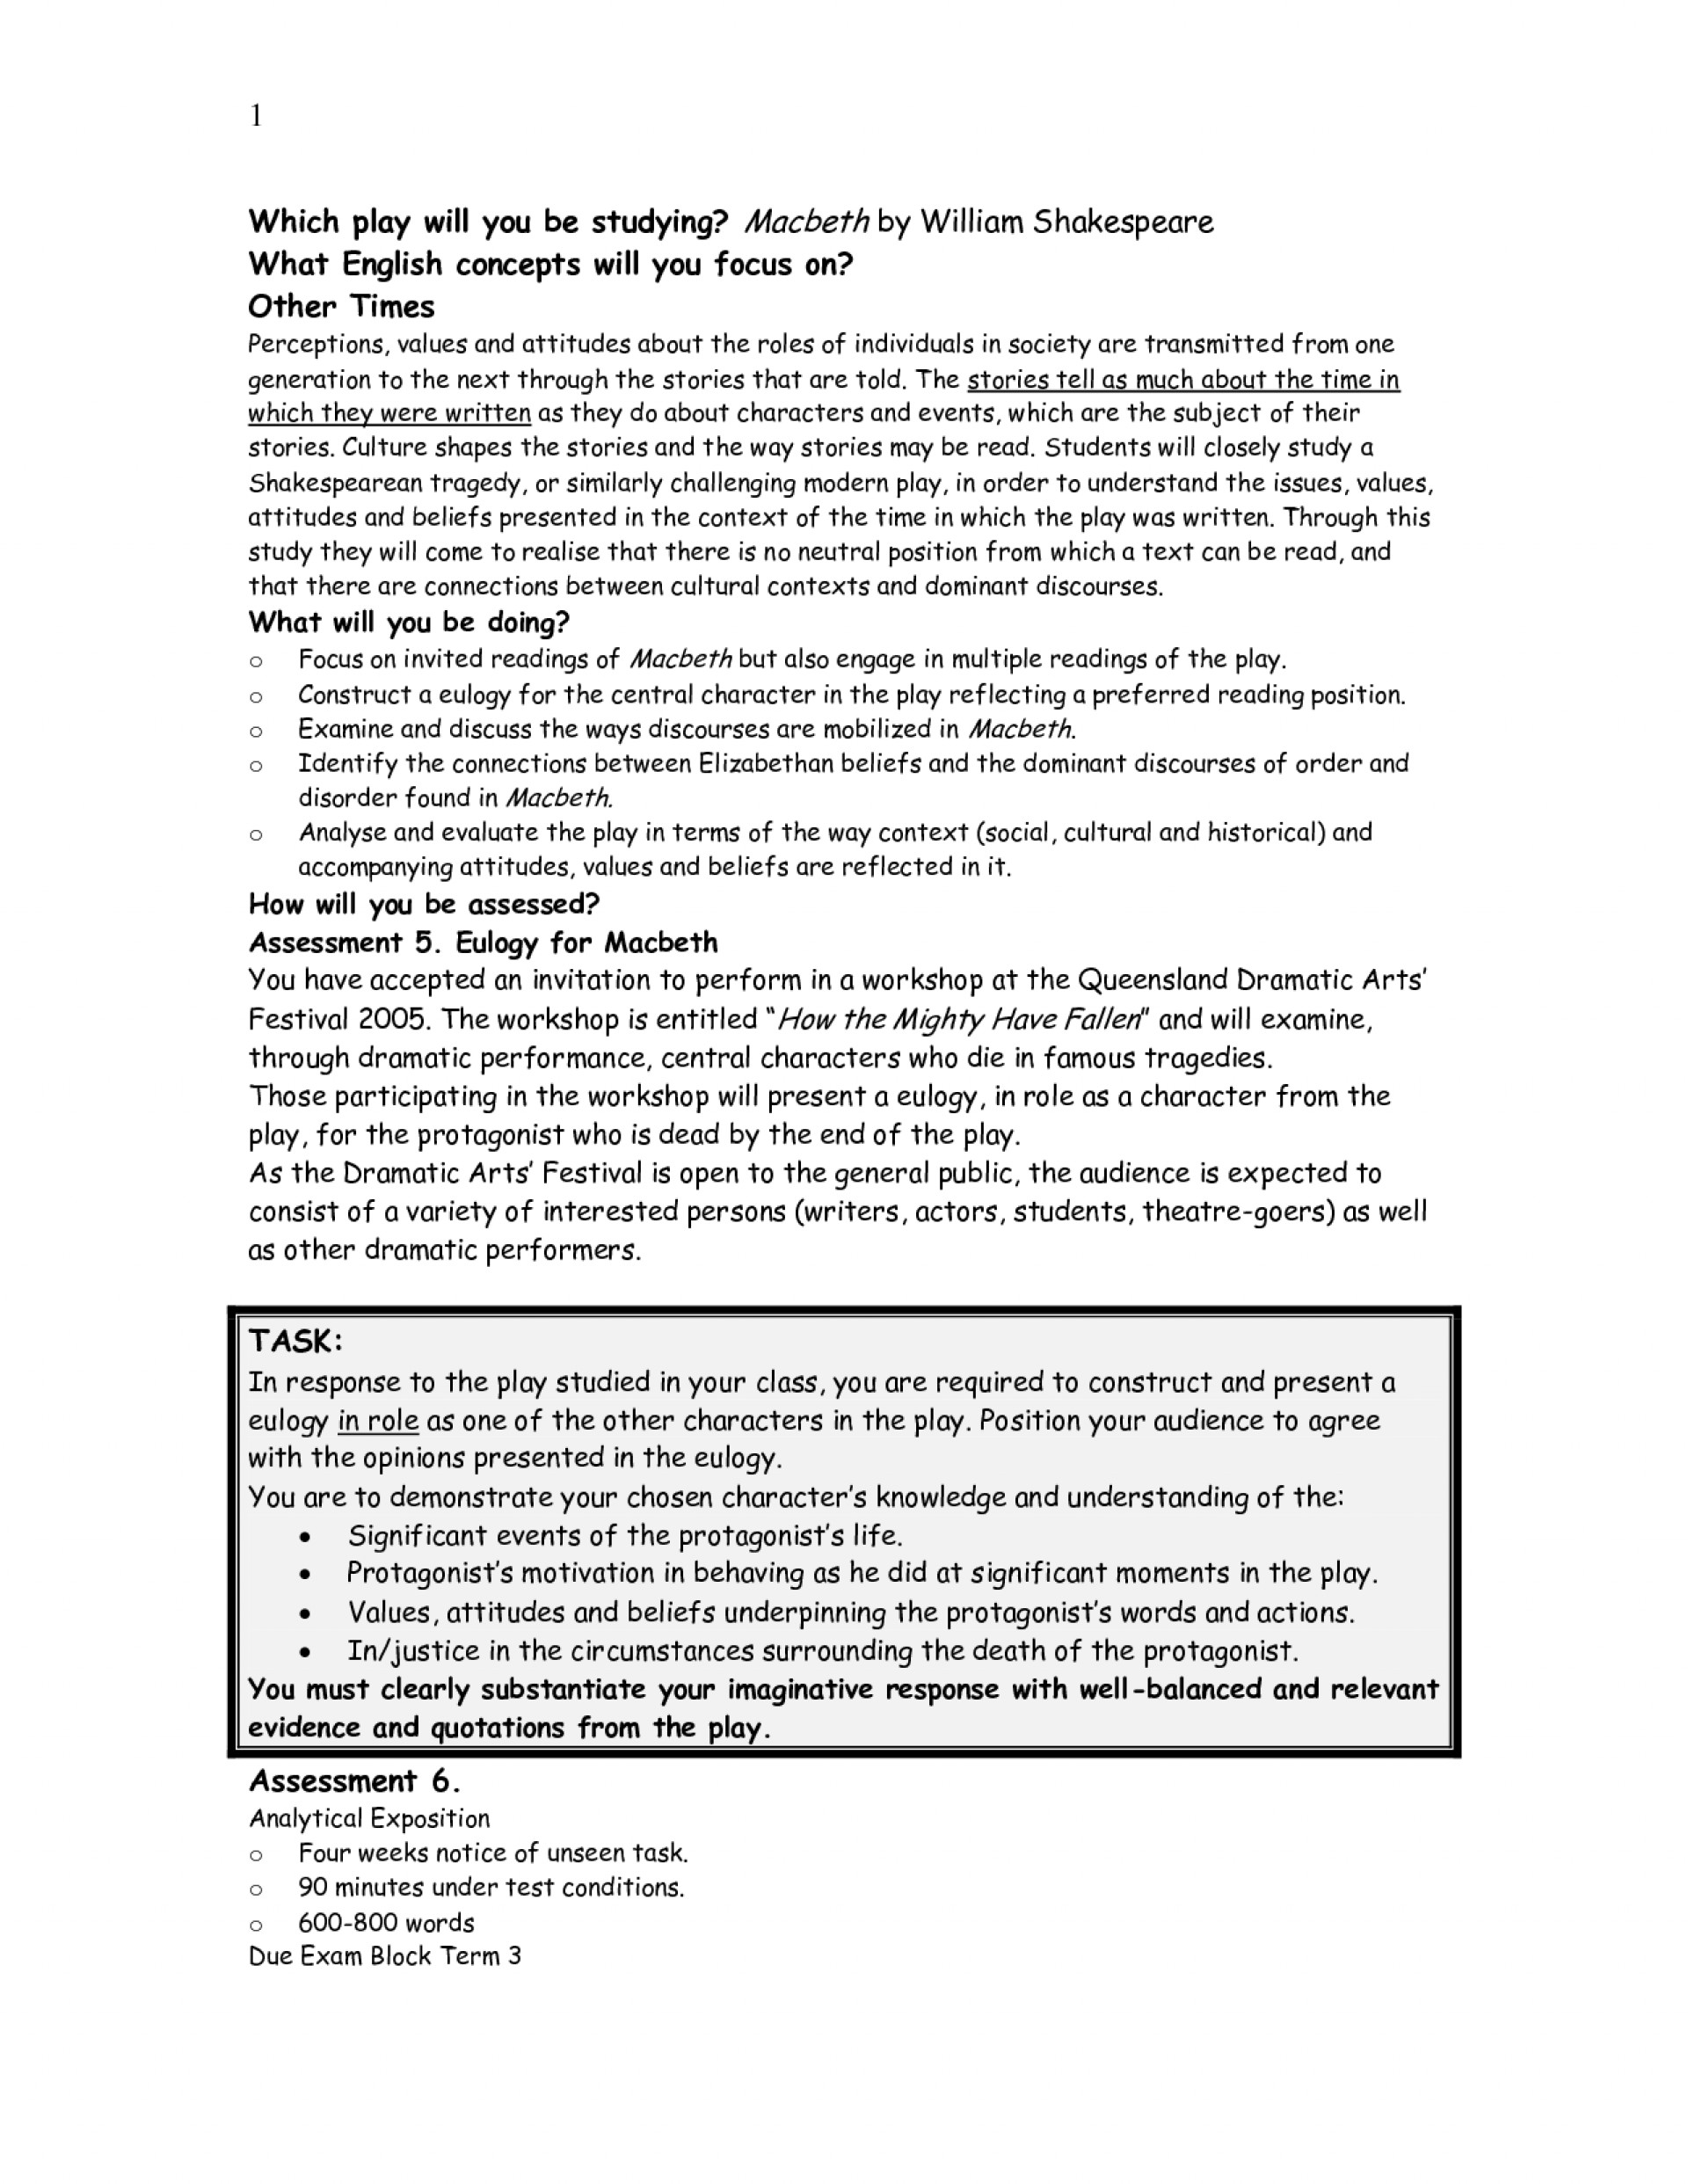 016 Essay Example Best Photos Of Art Appreciation Diabetes Research Paper Formal Macbeth Outline L Marvelous On And Lady Macbeth's Relationship Literary As A Tragic Hero Plan 1920